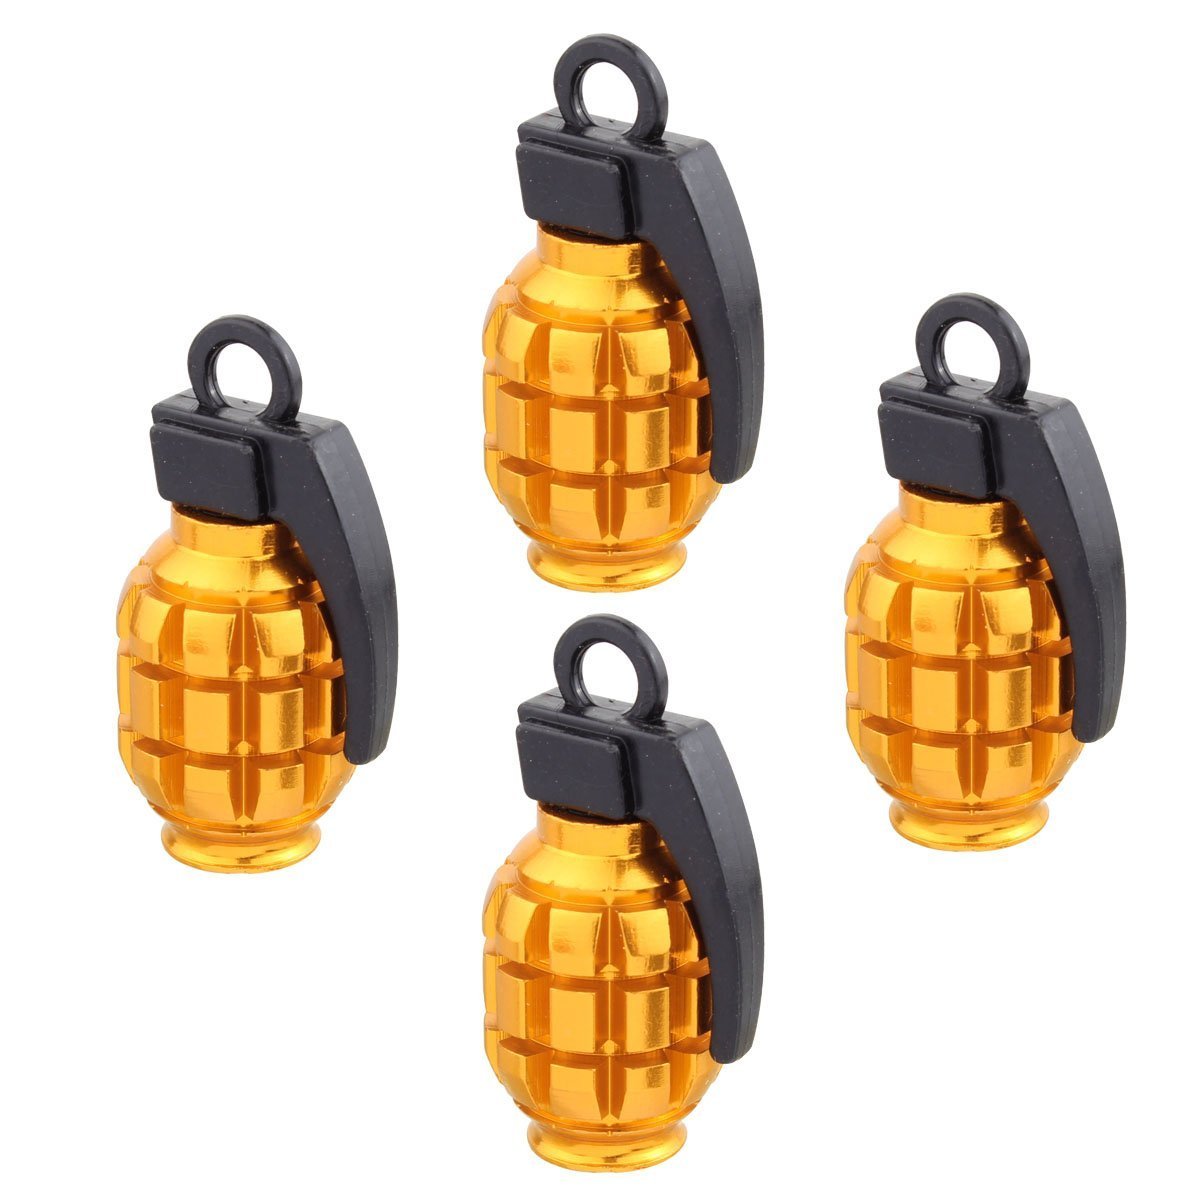 4pcs Universal Wheel Tyre Valve Caps Aluminum Grenade Bomb Shape Bicycle Tire Air Valve Cover for Car Truck Motocycle